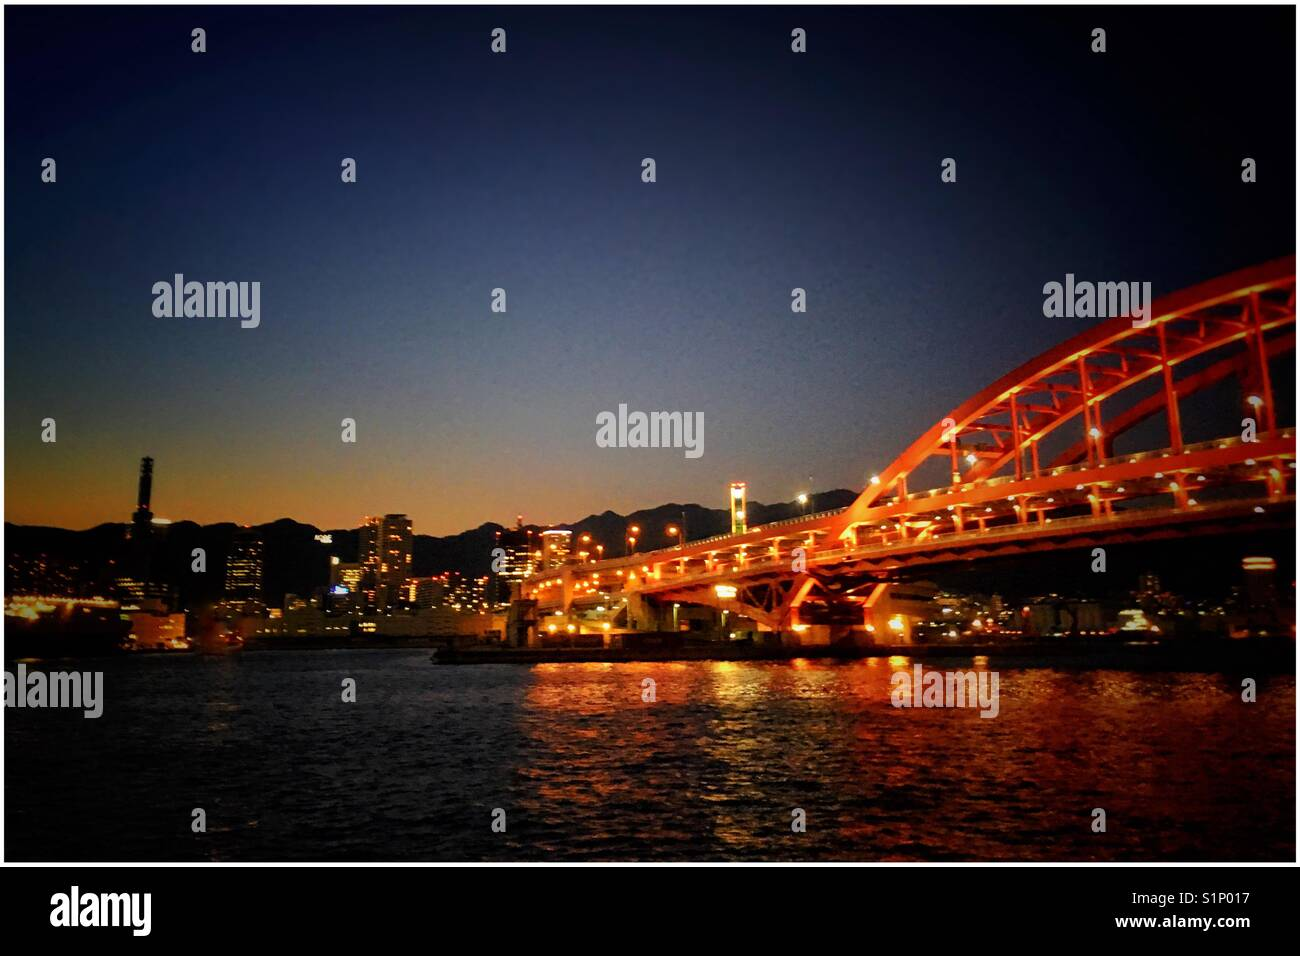 Bridge - Stock Image